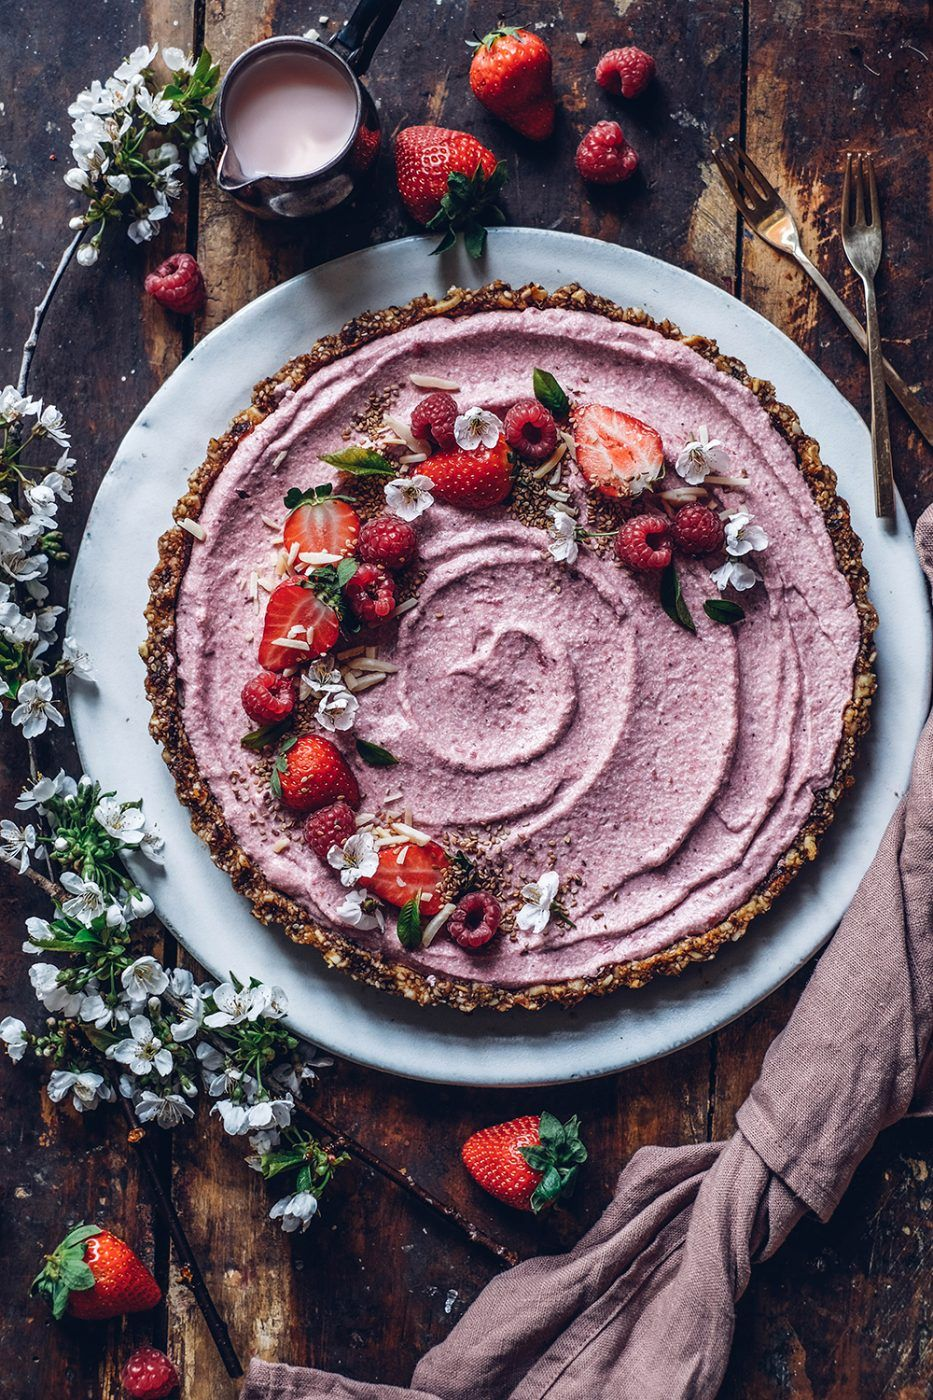 Image for Gluten-free no-bake Strawberry Tart with a Date-Cashew Crust